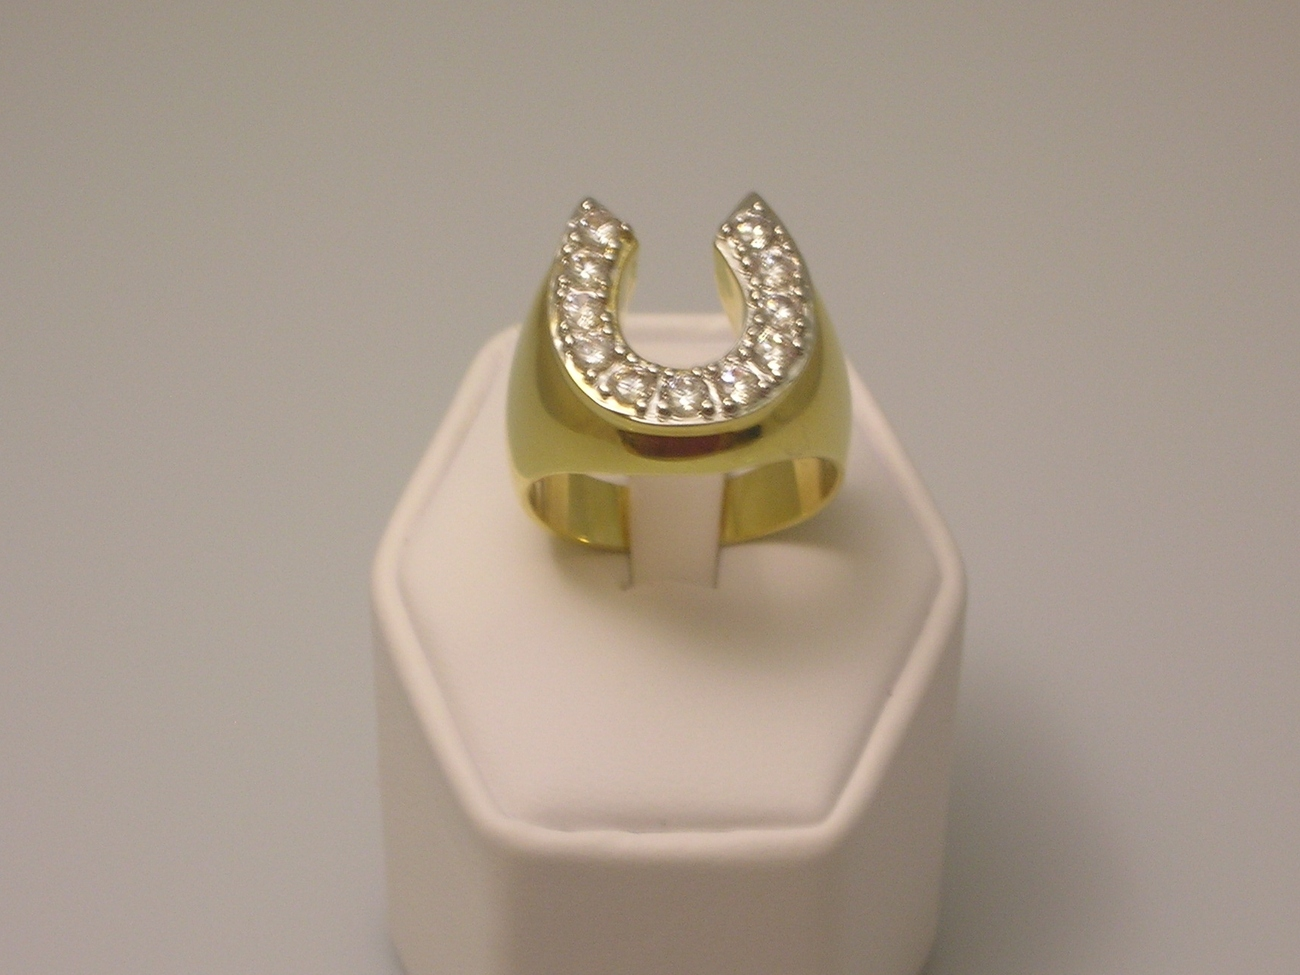 Horseshoe_cubic_zirconia_gold_mens_ring__1_